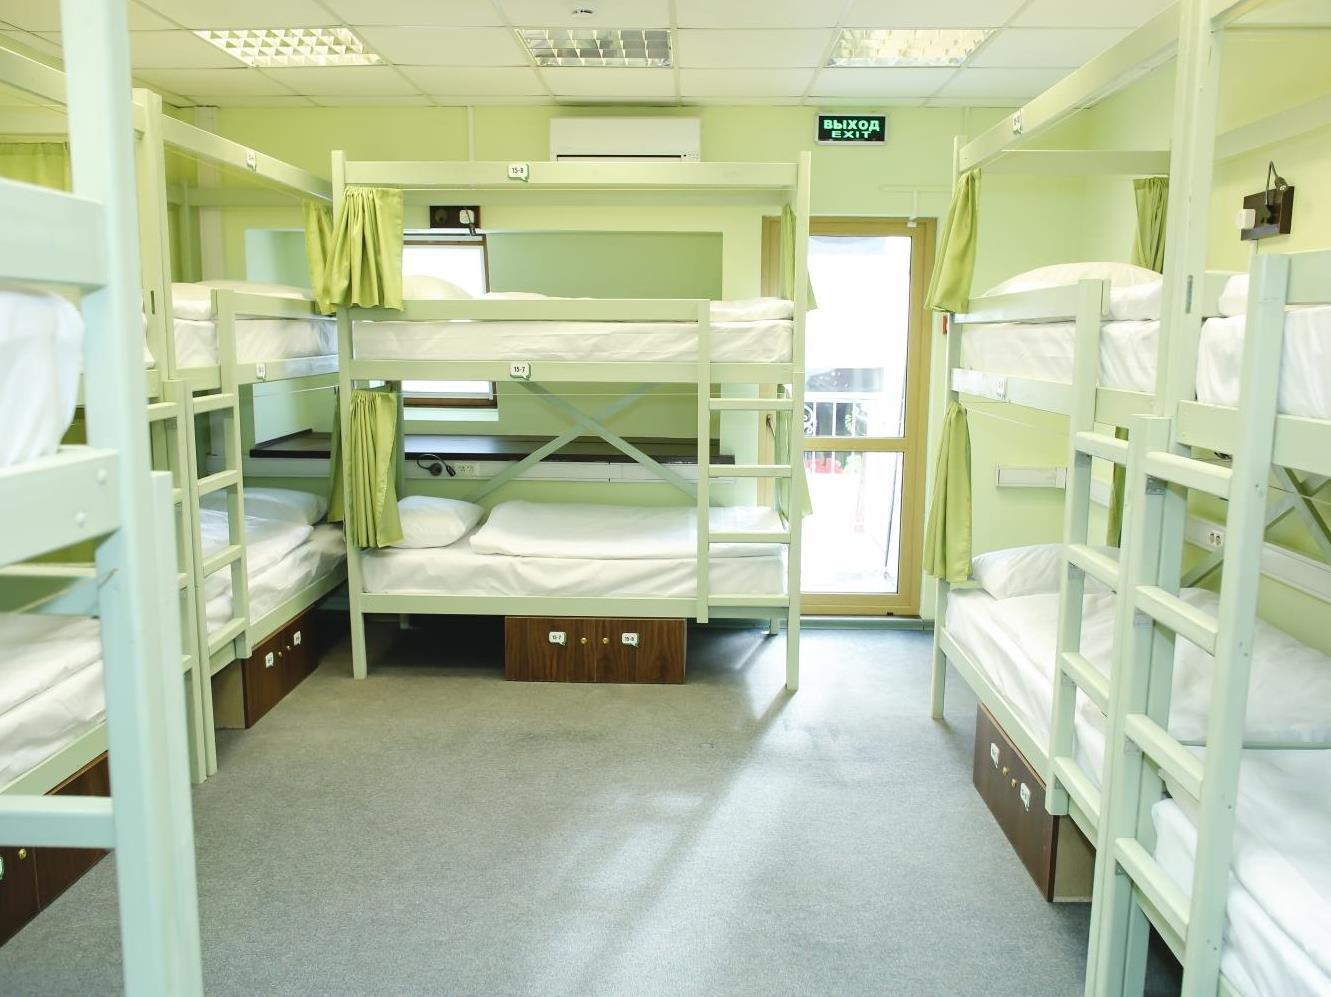 Bed in 12-Bed Mixed Dormitory